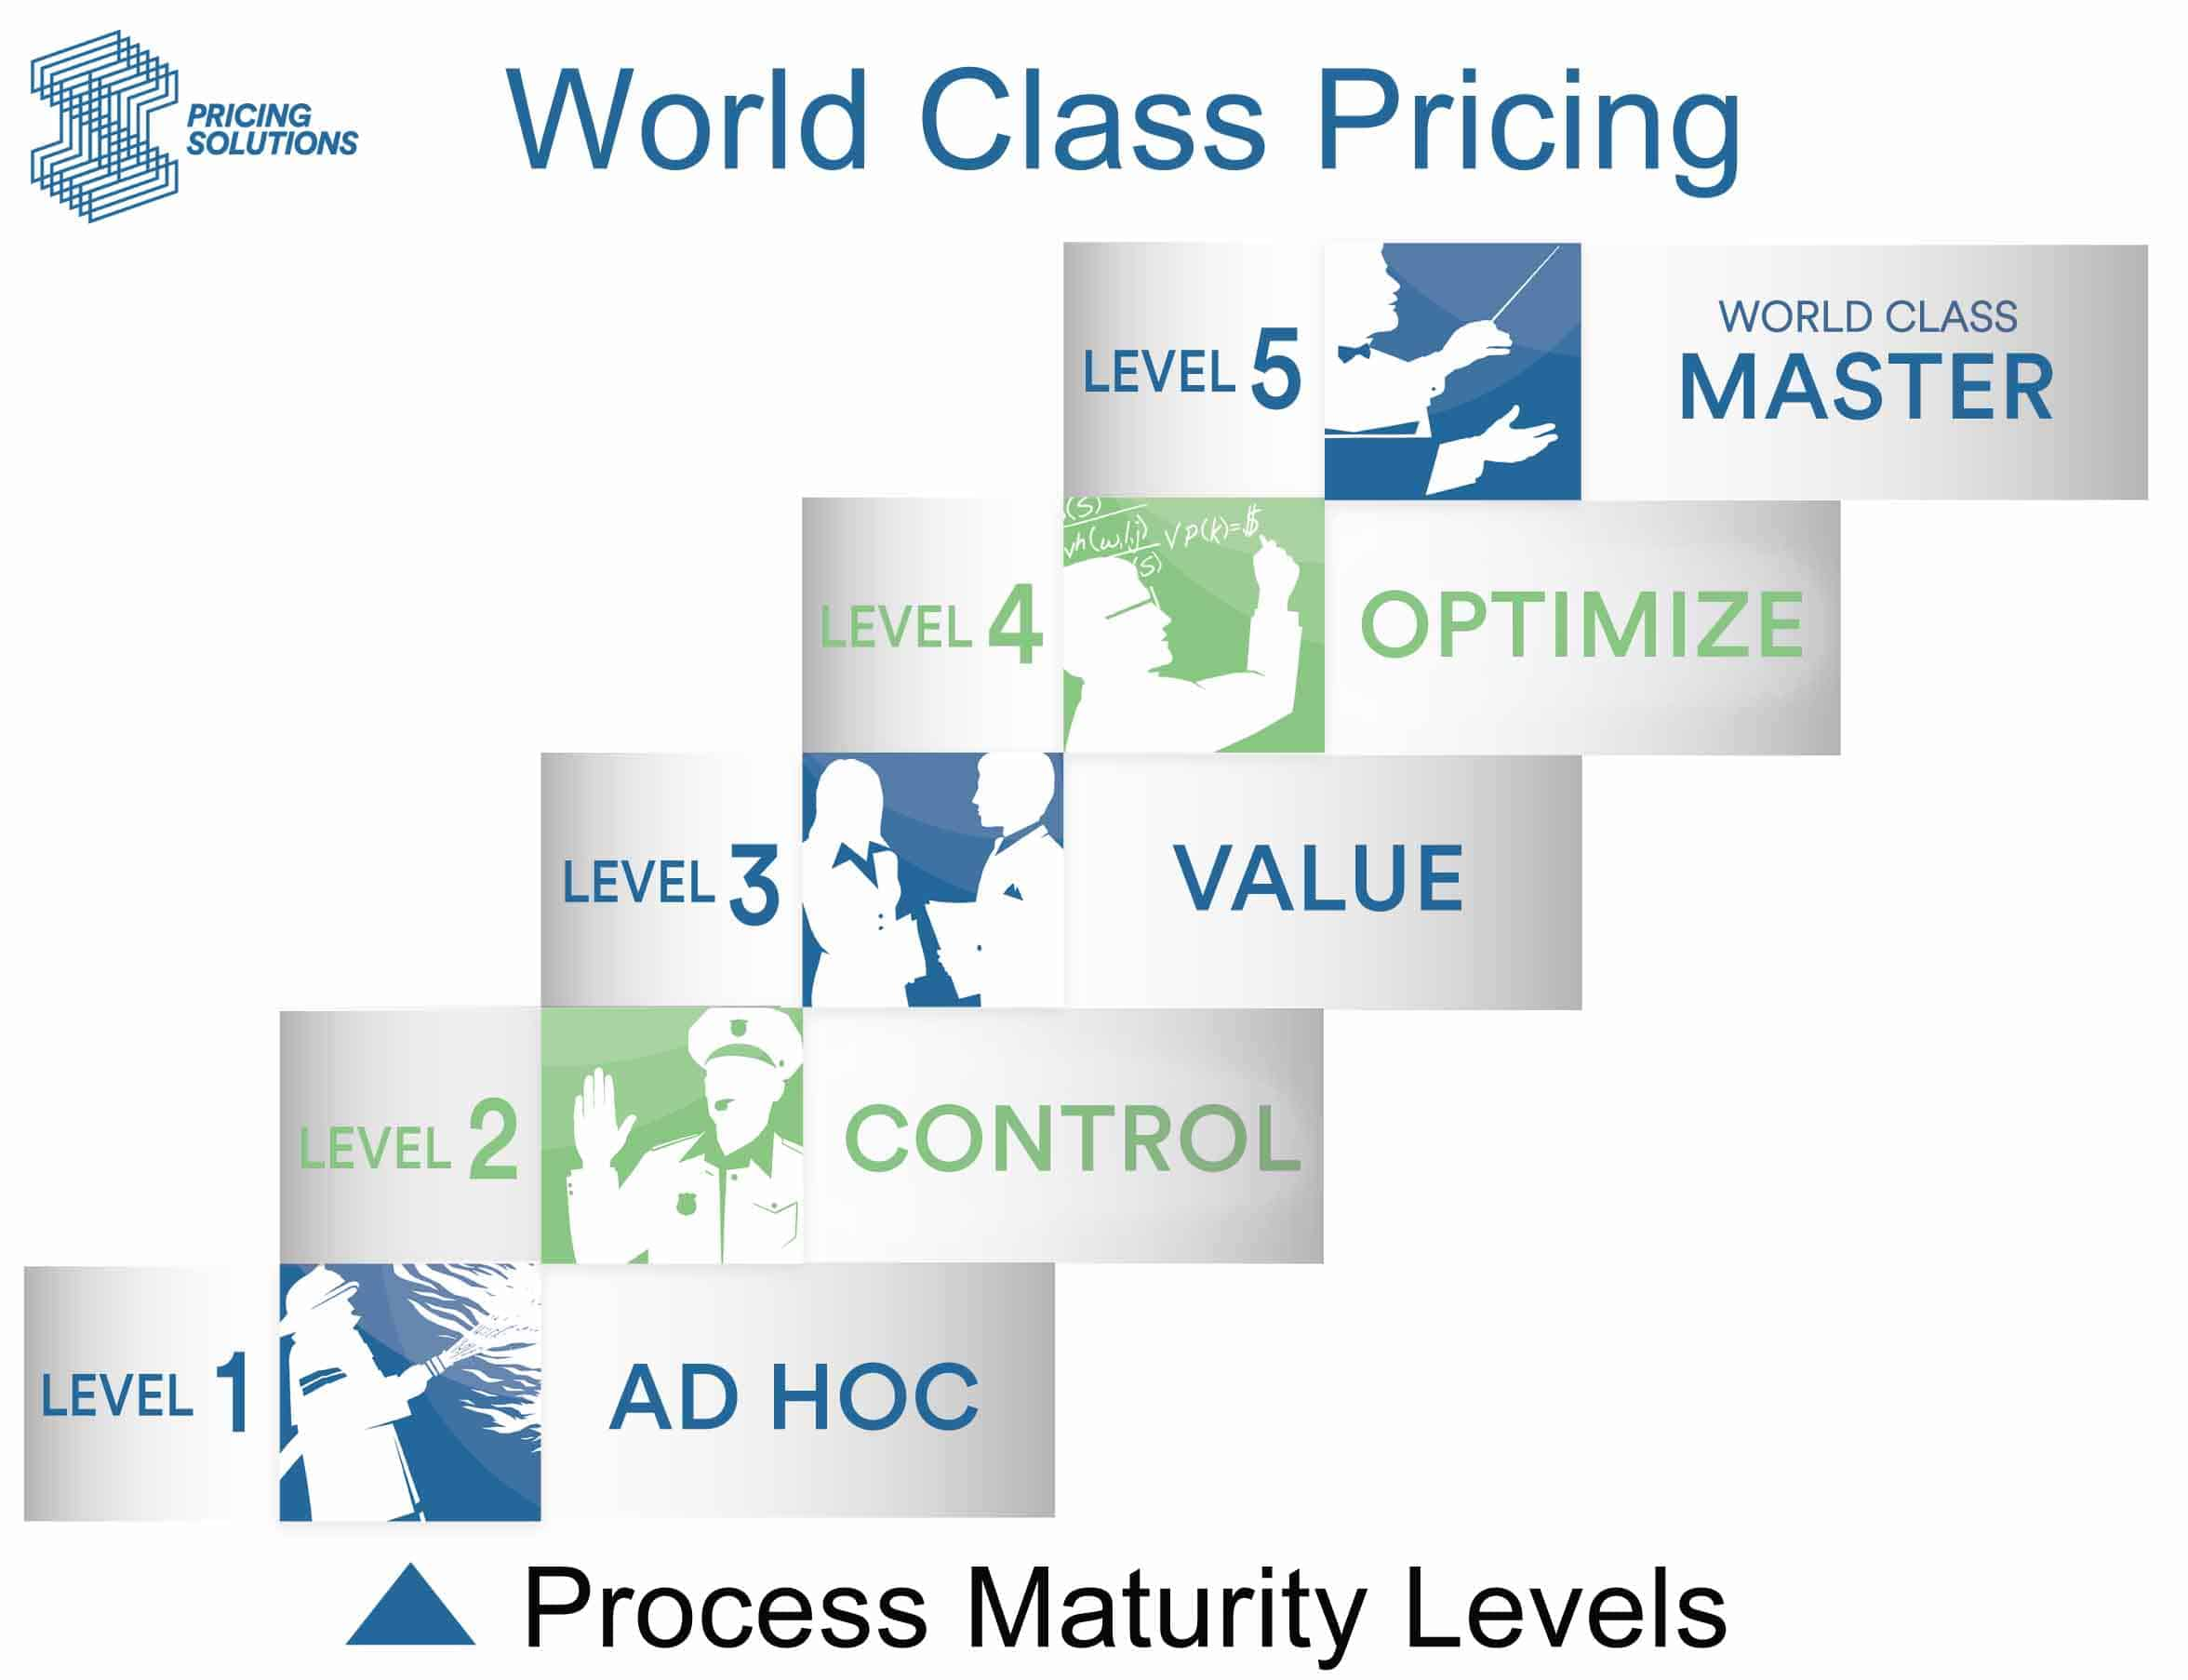 5 Levels of World Class Pricing